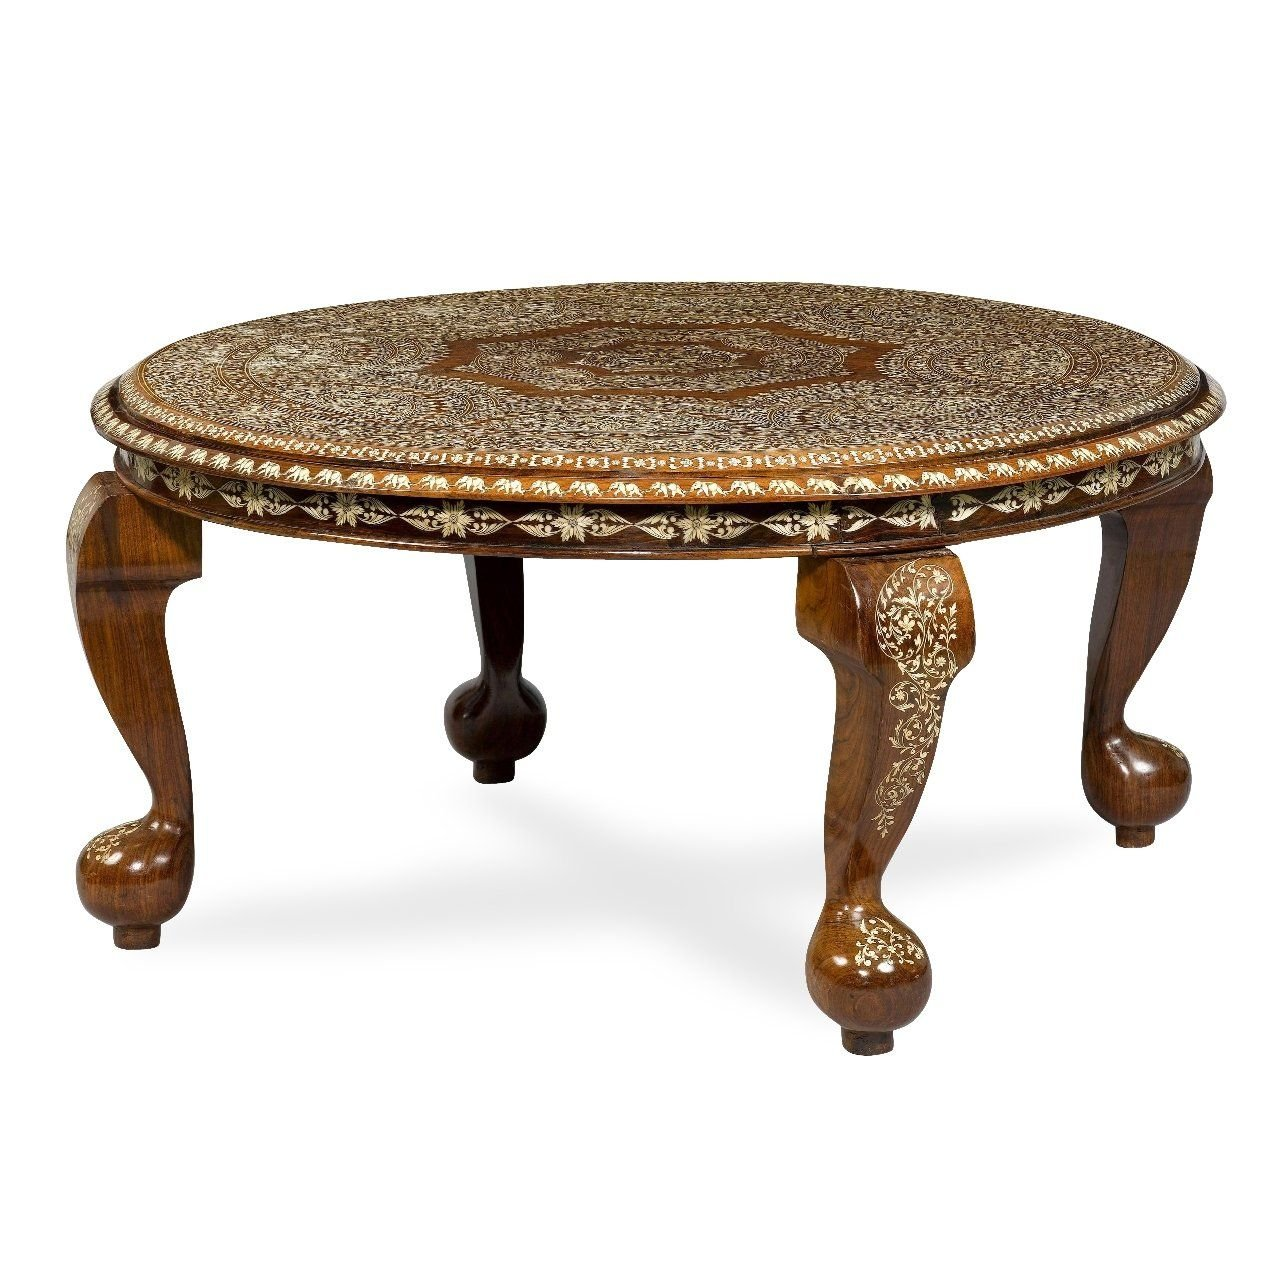 Ivory Inlaid Indian Antique Circular Coffee Table